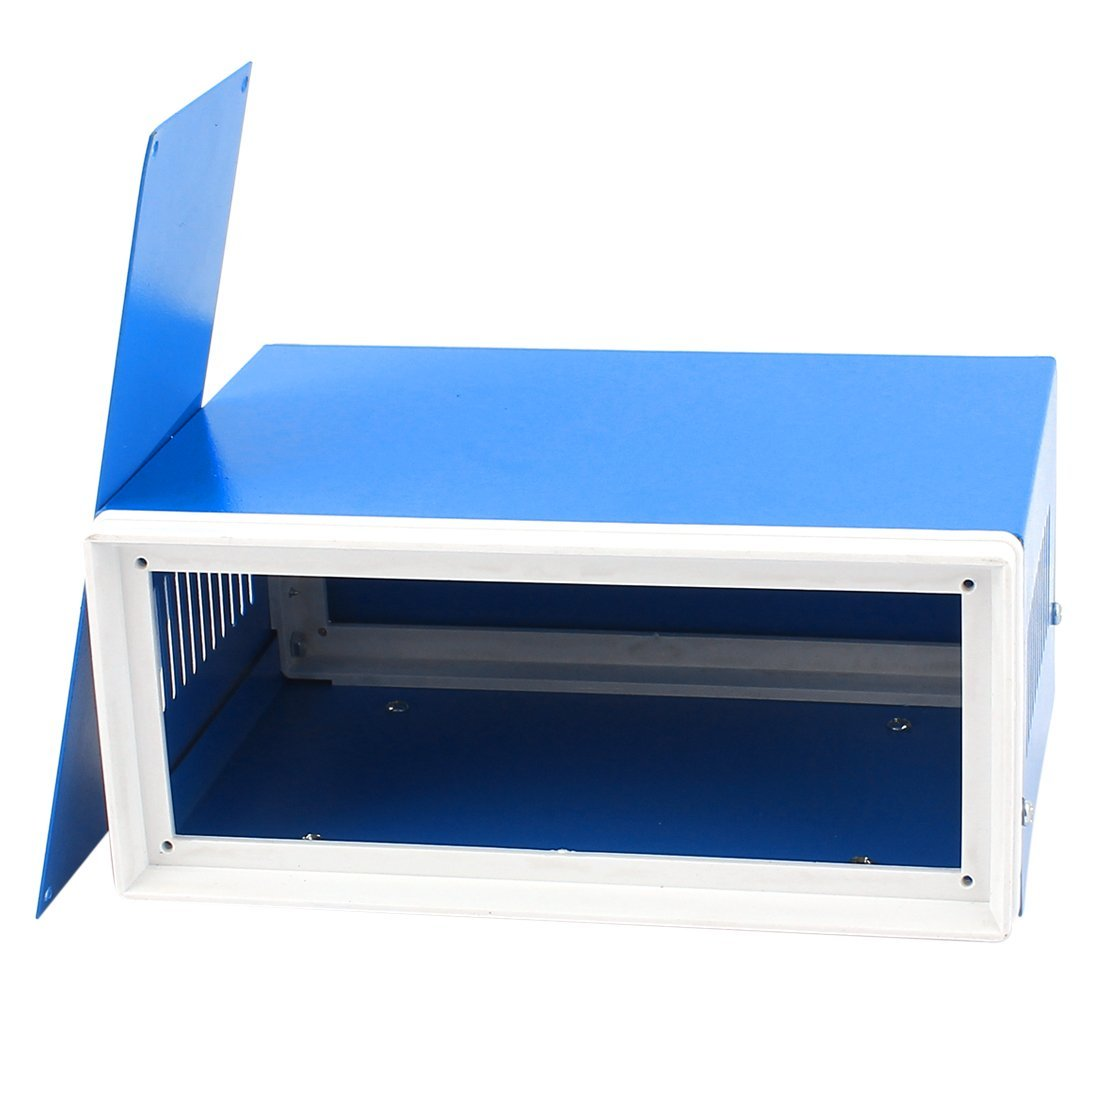 """uxcell 6.69"""" x 5.12"""" x 2.95""""(170mmx130mmx75mm) Metal Junction Box Universal Project Enclosure"""